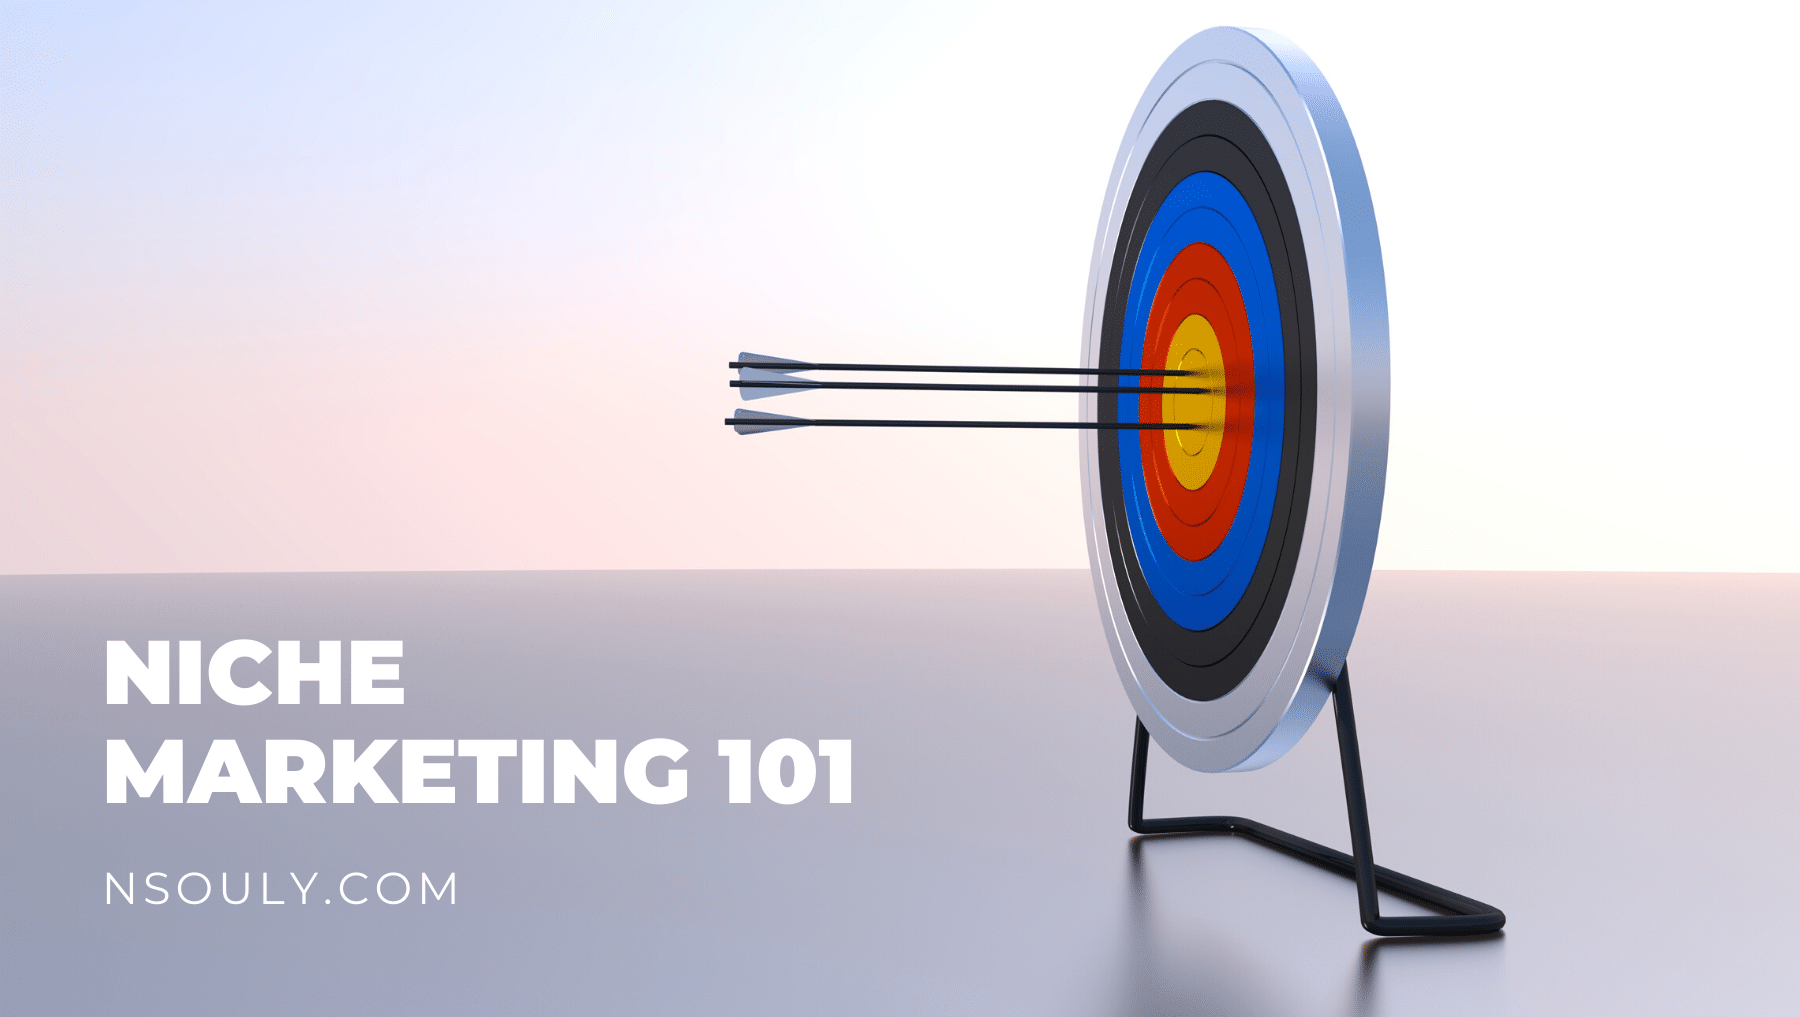 Niche Marketing 101: How To Use It for Your Brand?